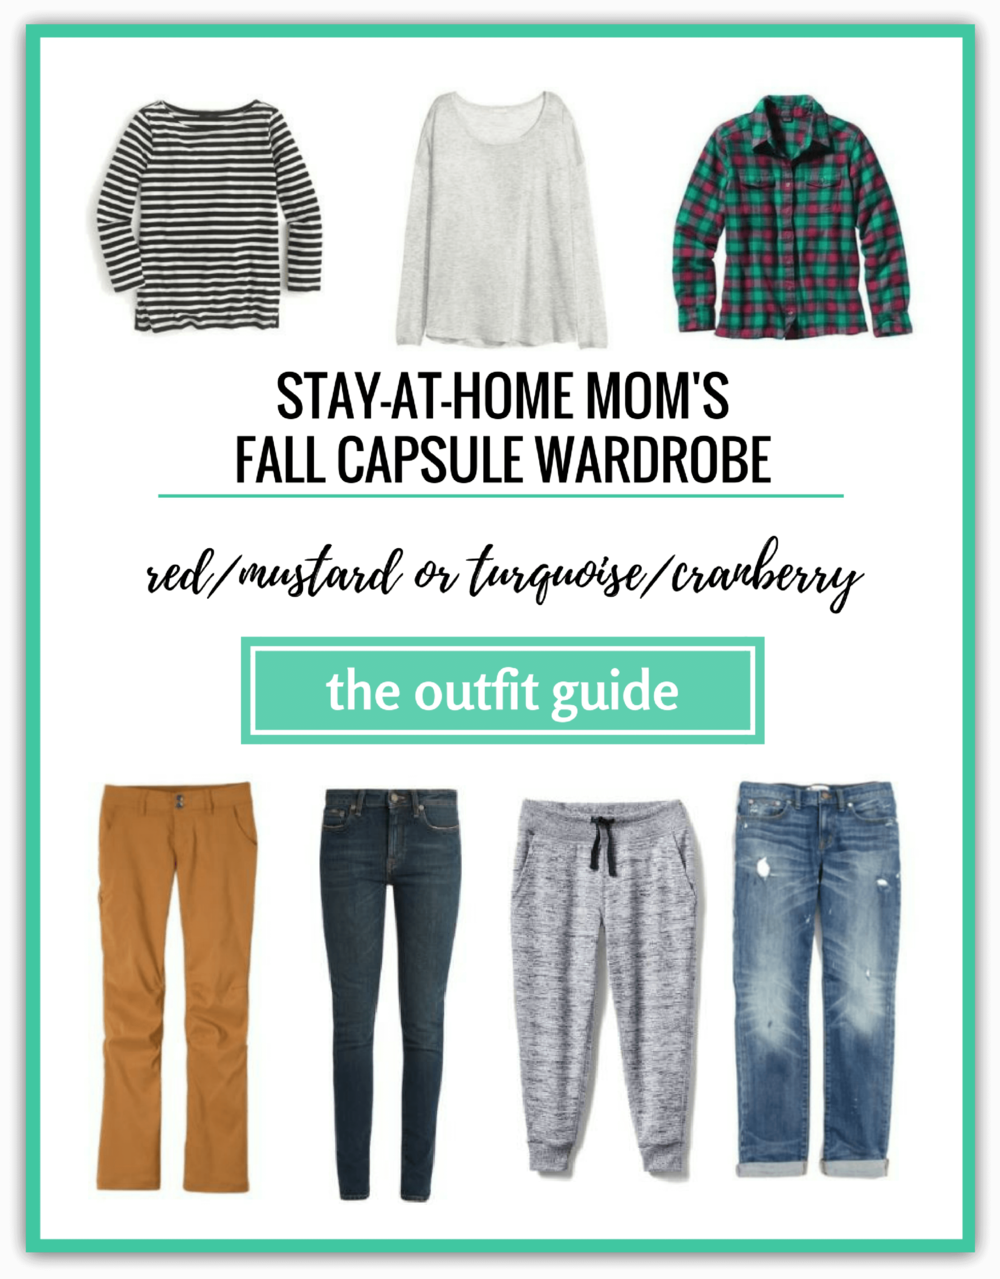 Fall Capsule Wardrobe Outfit Guide for Stay-at-Home Moms.png